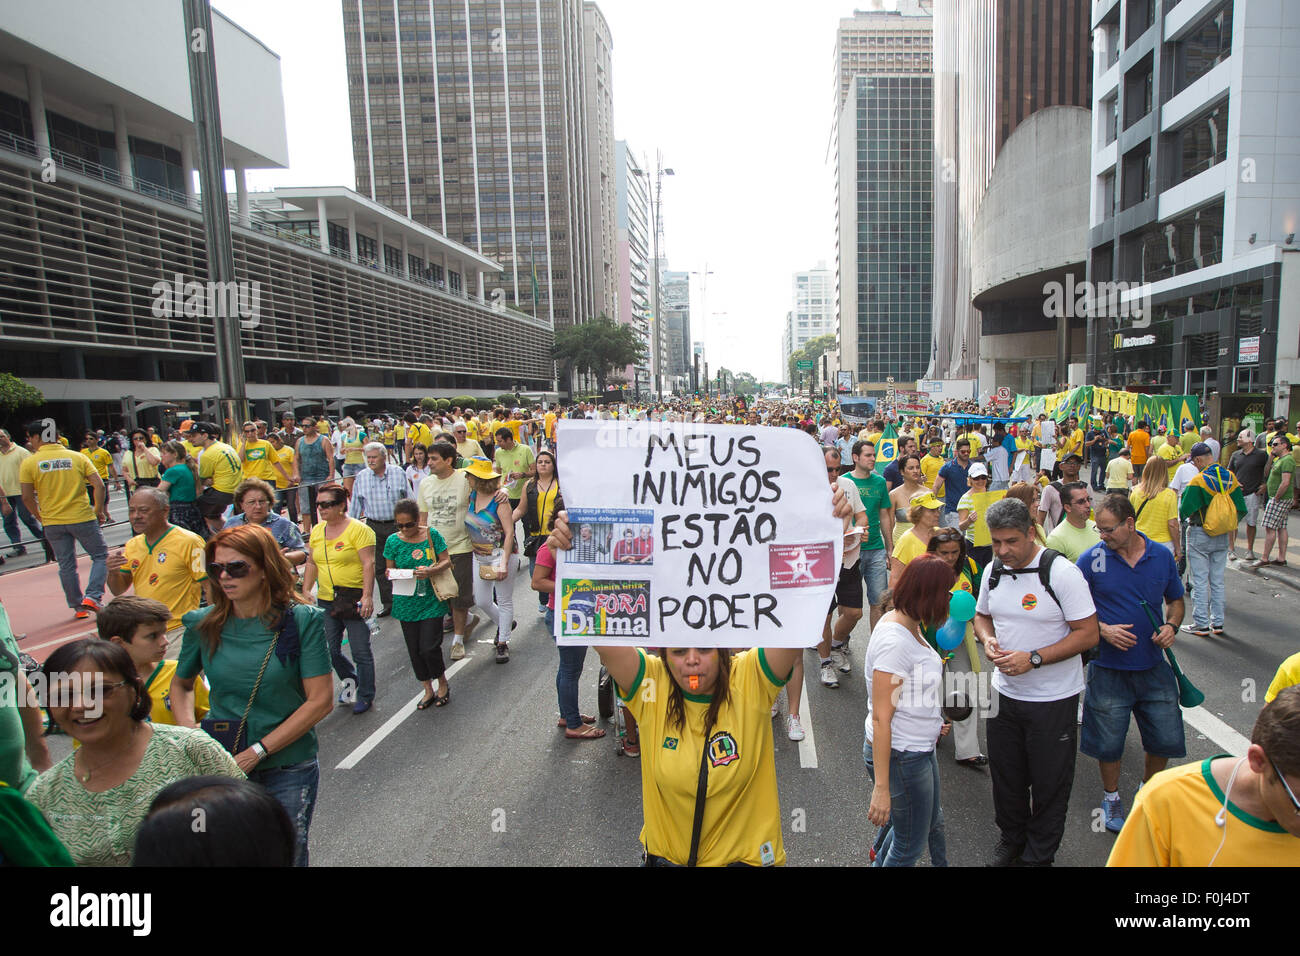 Sao Paulo, Brazil. 16th Aug, 2015. A protester holds a cardboard with the slogan 'my enemies are in power' - Stock Image